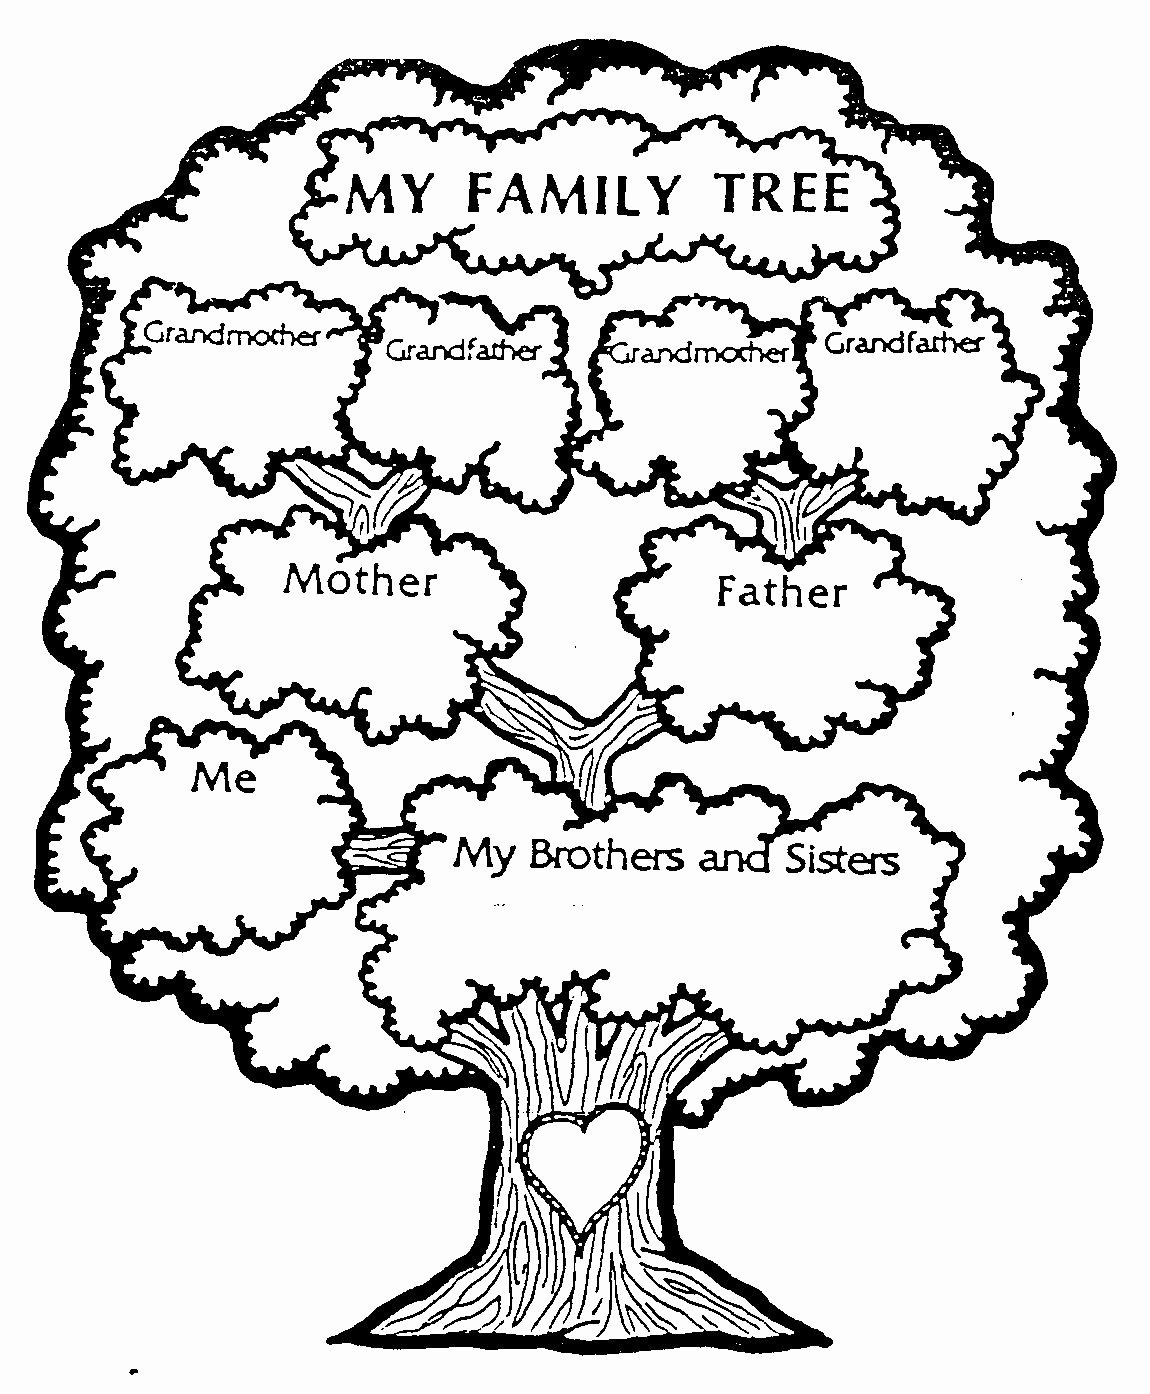 Printable Blank Family Tree Best Of Family Tree Freebies – Gianna the Great